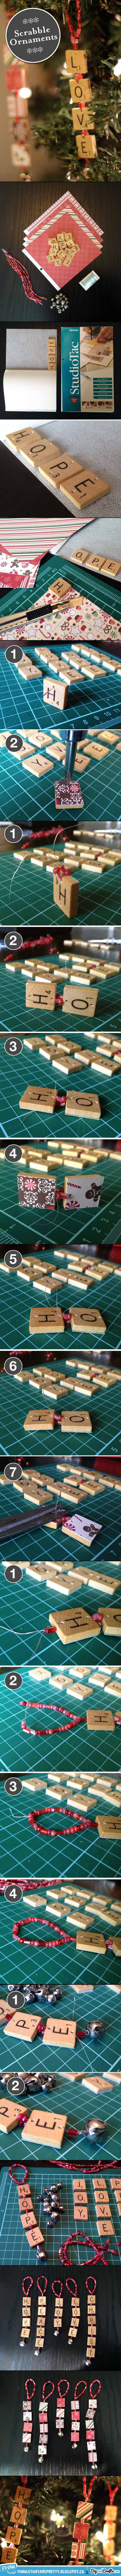 Christmas Decoration – Scrabble Ornaments